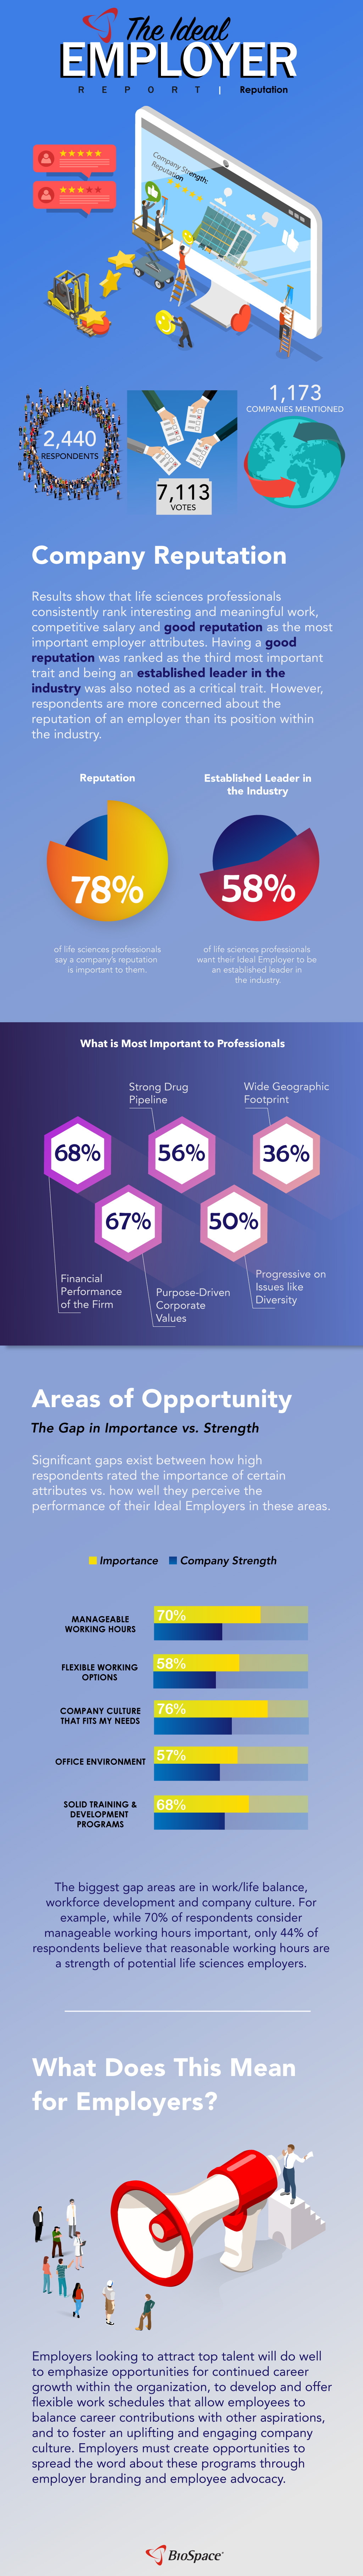 Ideal Employer Survey Reputation Topic Infographic